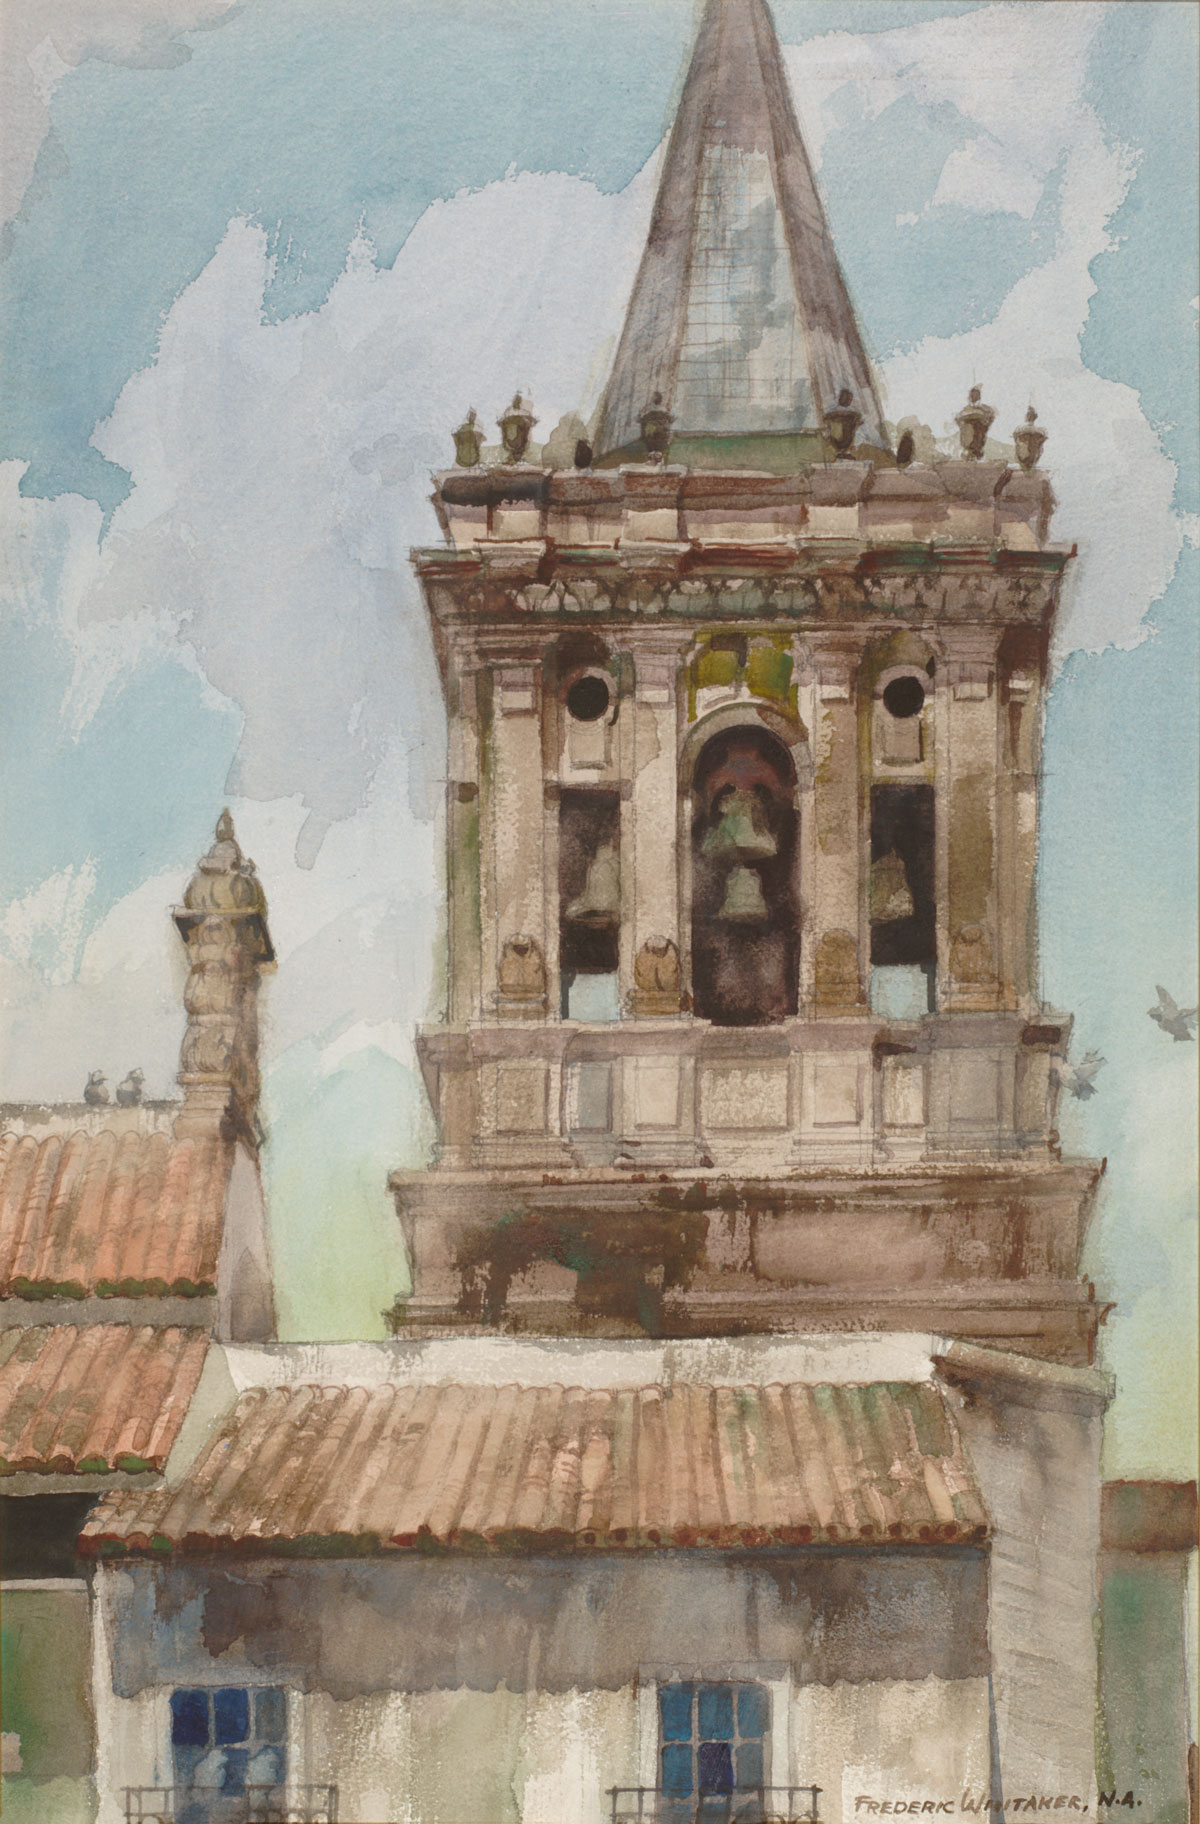 """Bell Tower, San Lucar"" 1971 © Frederic Whitaker N.A. 30x22 inches Watercolor"